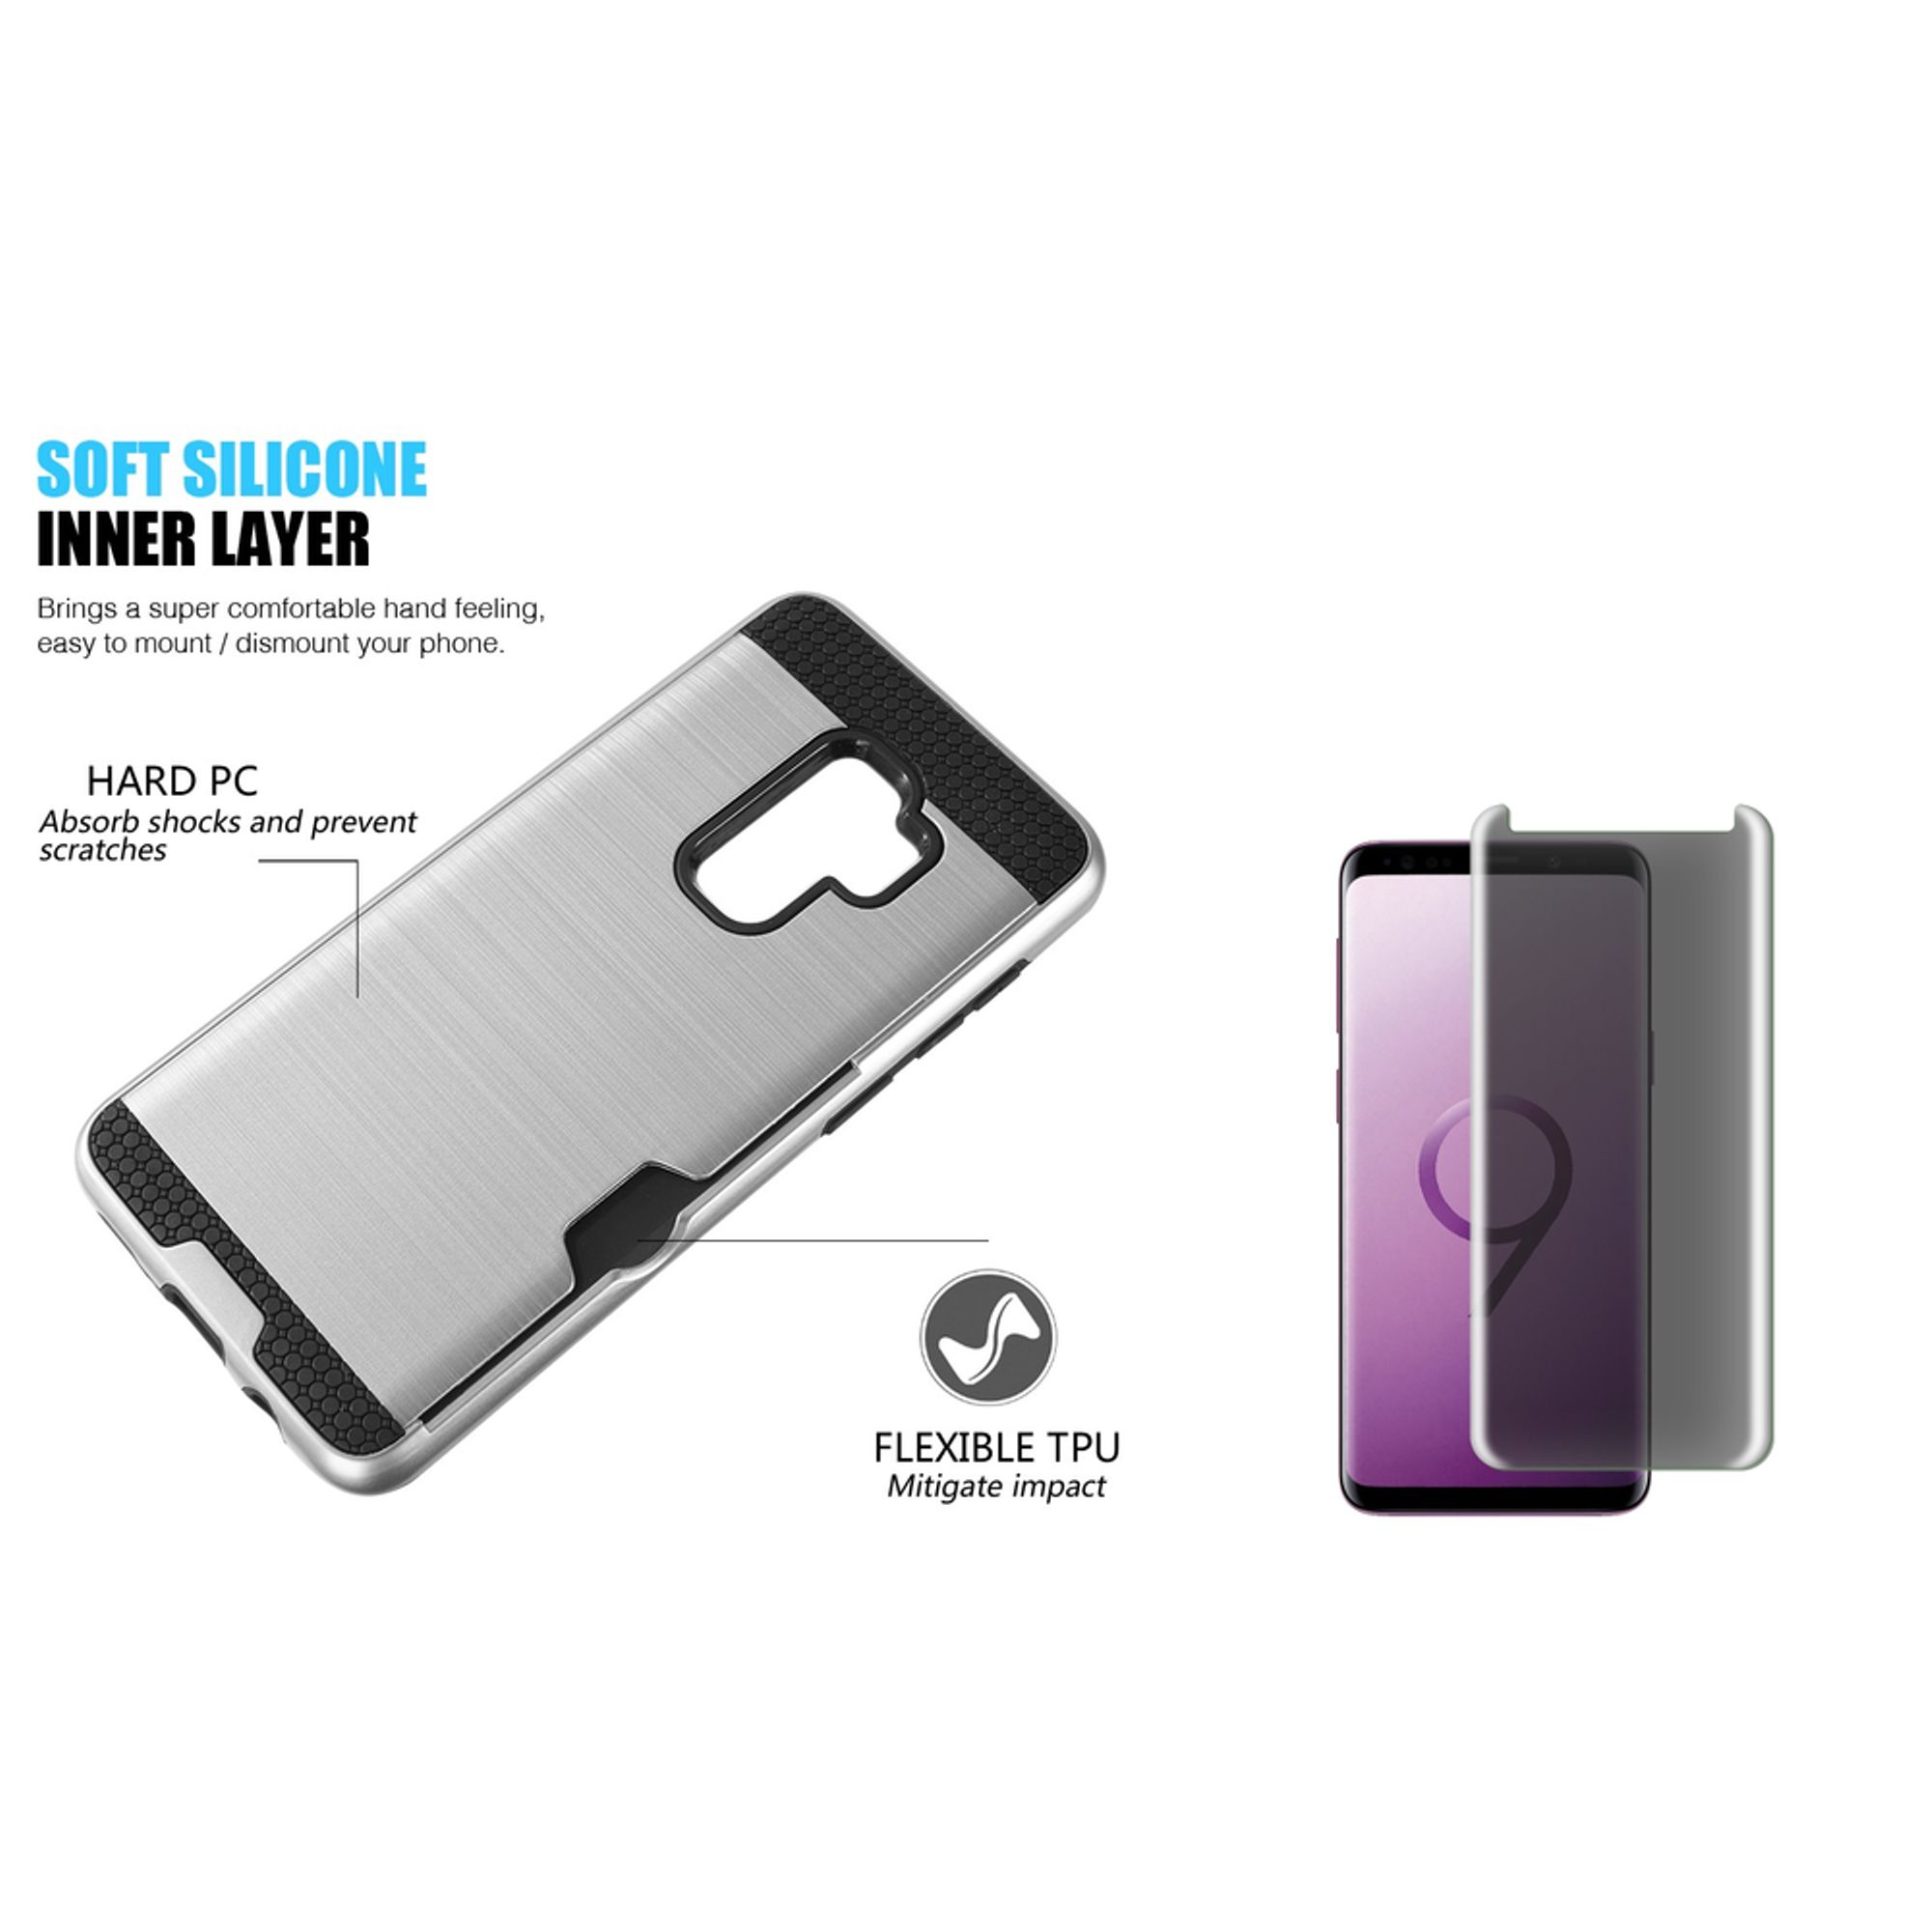 Galaxy s9 plus case with screen protector privacy glass by Insten Card To Go Dual Layer Hybrid Brushed with Holder Slot Phone Case Cover For Samsung Galaxy S9 Plus, Silver/Black